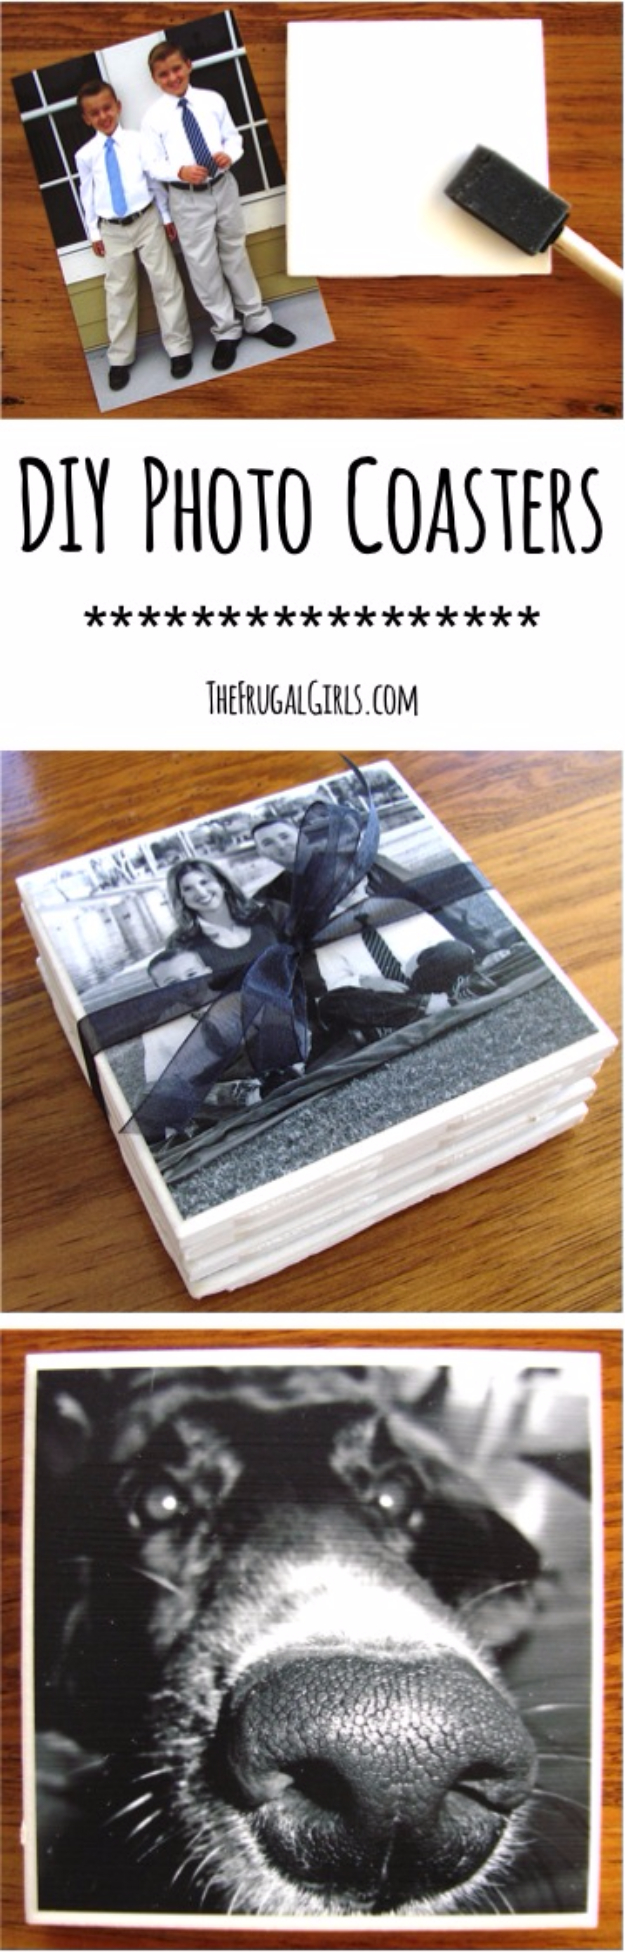 DIY Coasters   DIY Photo Coasters   Best Quick DIY Gifts And Home Decor    Easy